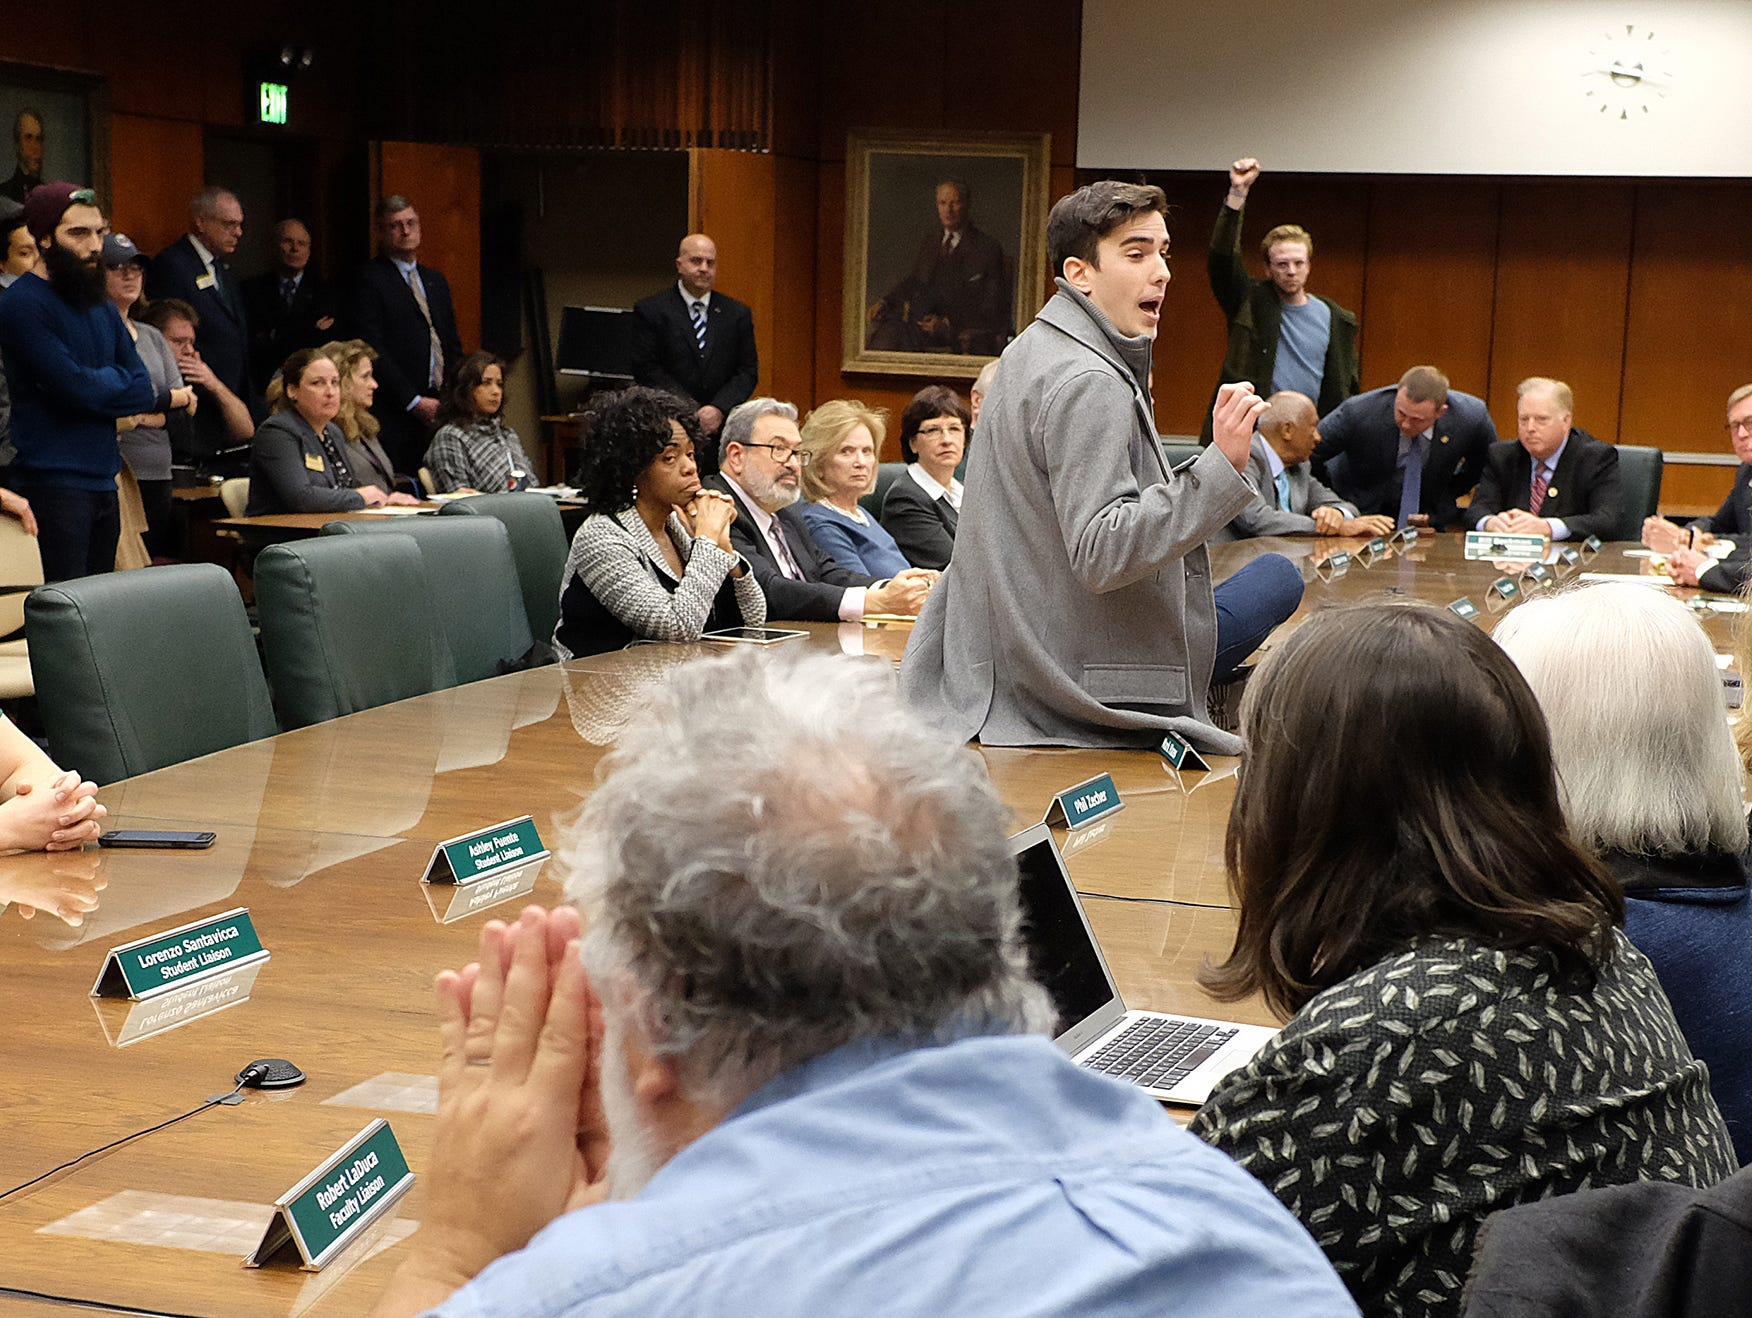 MSU senior Connor Berdy protests at the MSU Board of Trustees meeting Wednesday, Jan. 31, 2018 in East Lansing, Michigan.